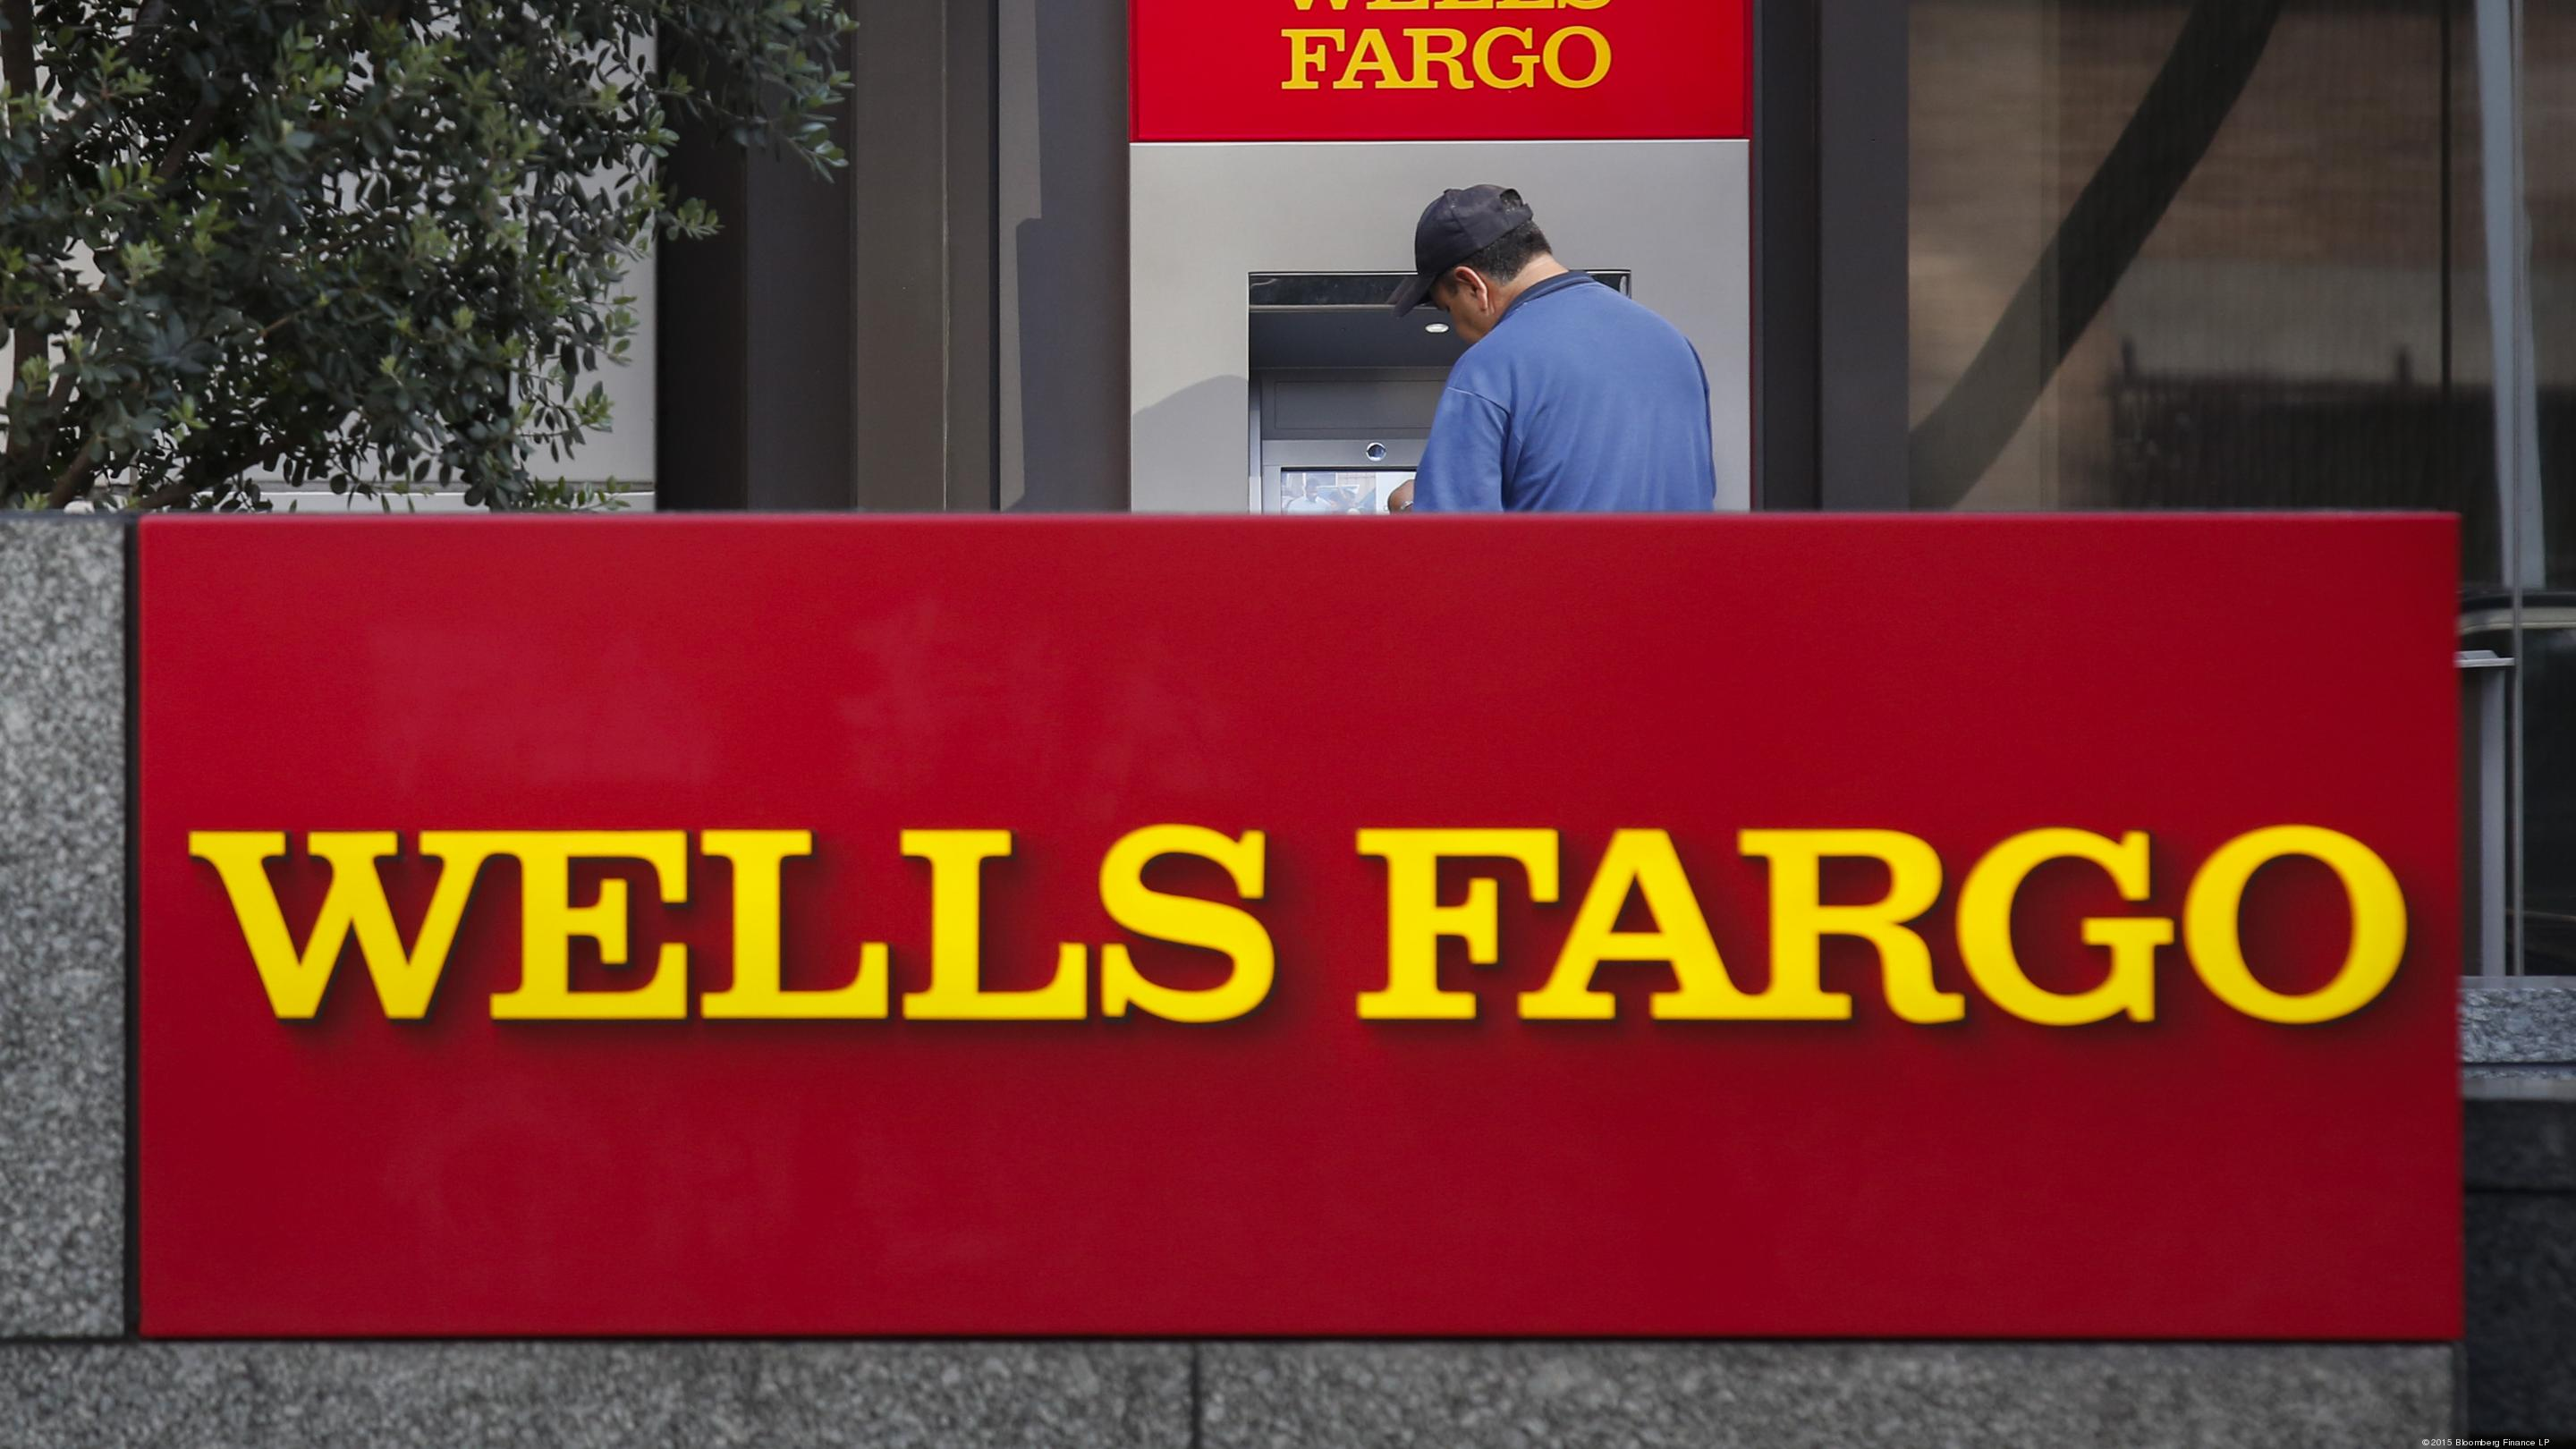 Three women among 4 Wells Fargo managers fired amid banking scandal